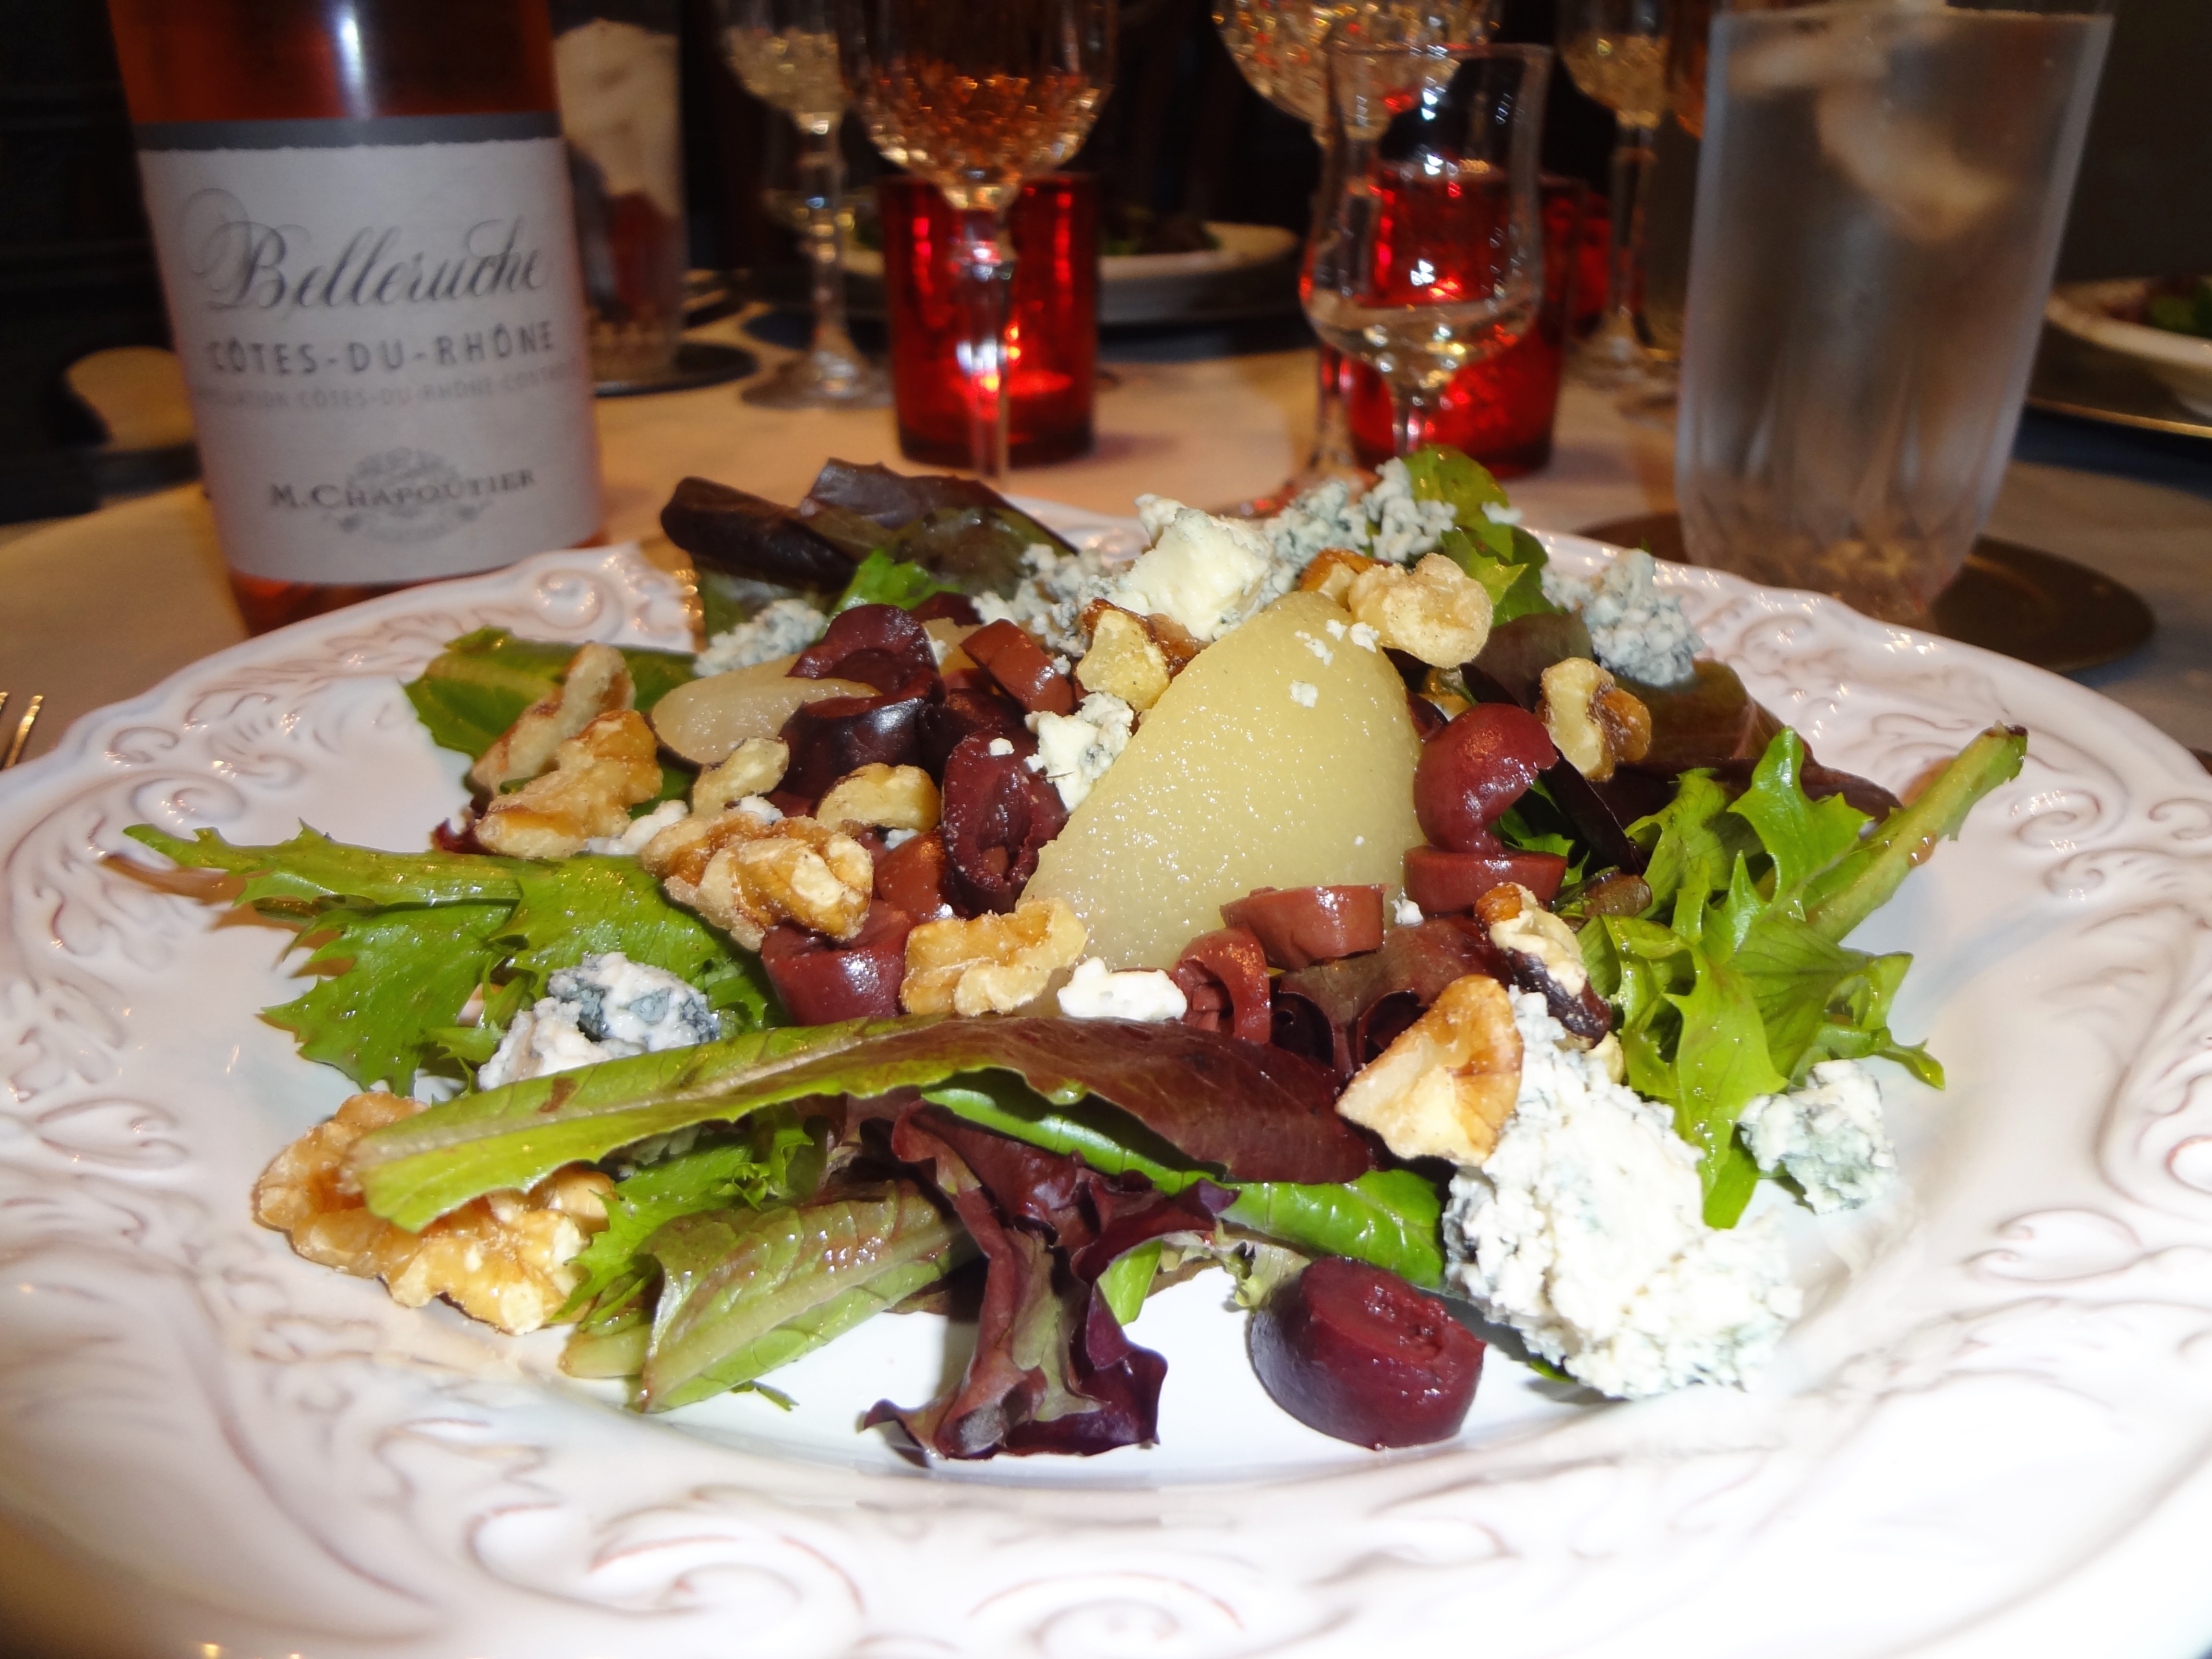 Mesclun Salad with Pears and Blue Cheese